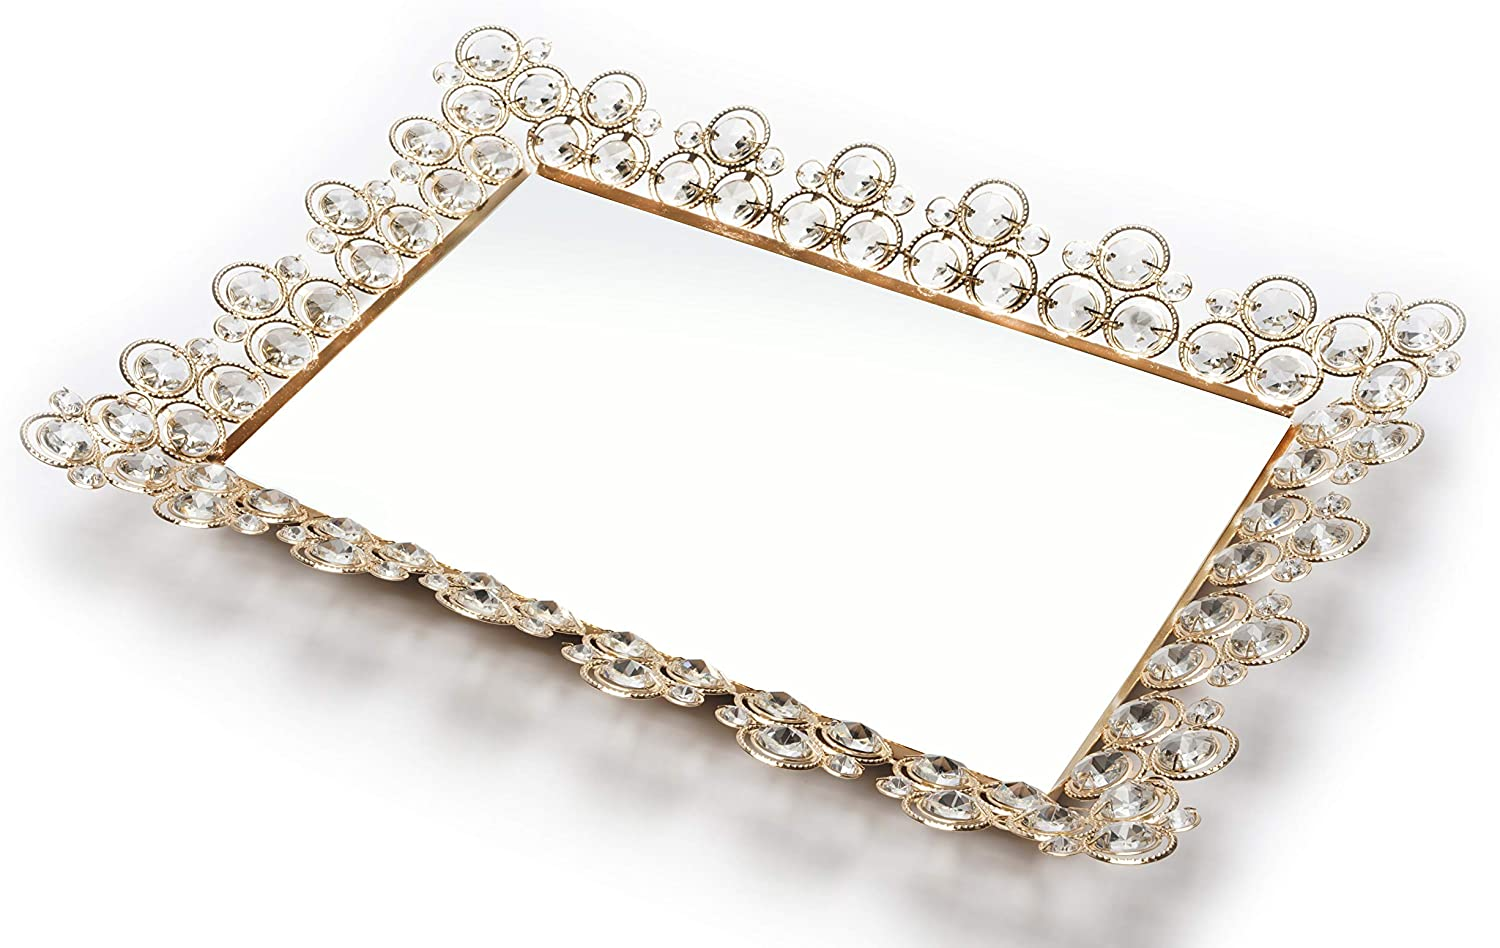 "Mint Living X-Large Gold Crystal Mirror Tray(17.5"" x 13"") - Decorative Ornate Rectangle Coffee Table Decor for Ottoman, Dresser, Vanity, Bathroom, Serving, Makeup Jewelry Perfume Storage Organizer"